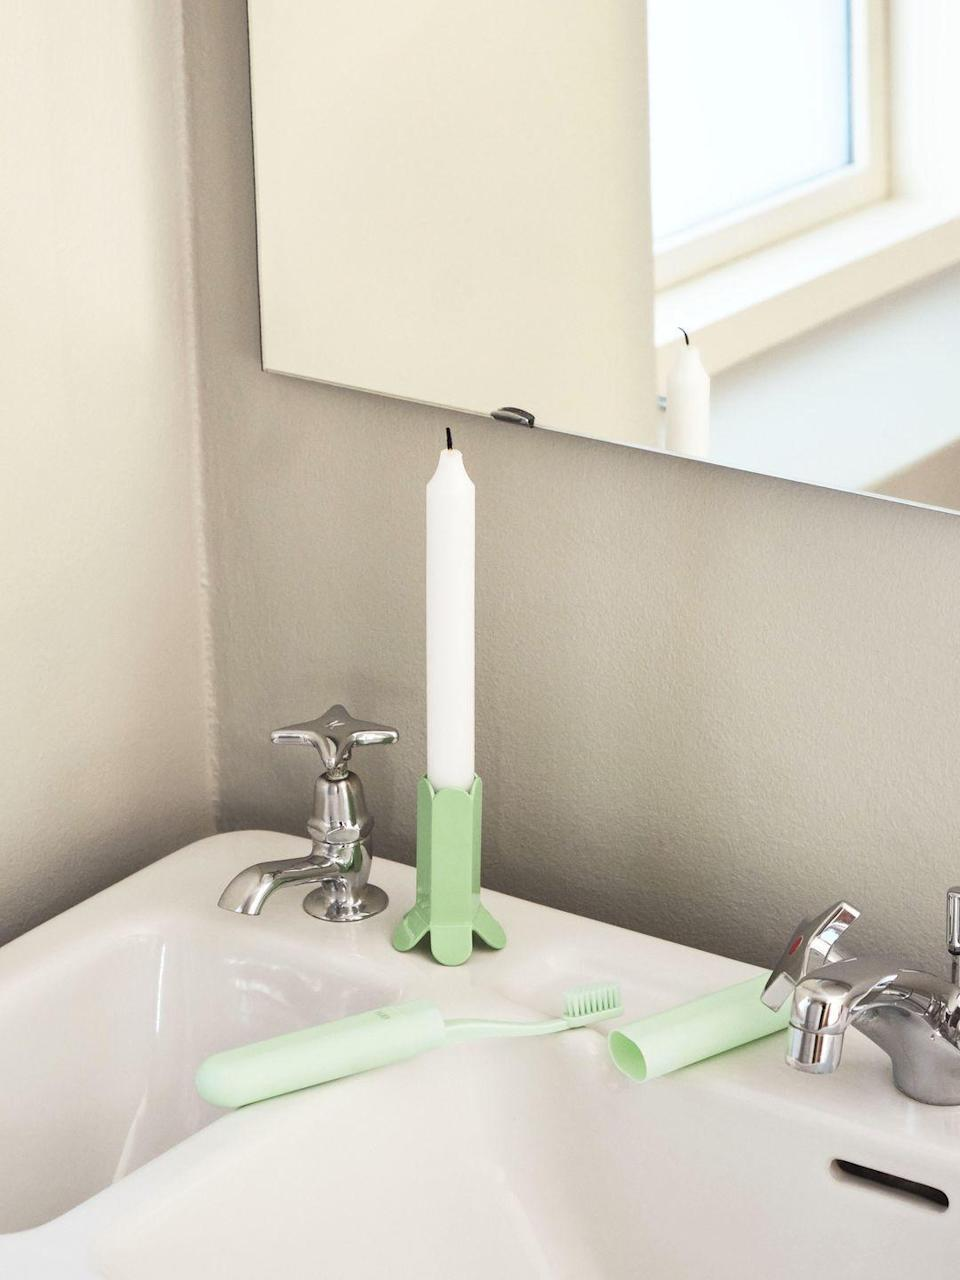 """<p>It's the totally on-trend 'Soft Mint' colour of these two accessories by Muller Van Severen and Andreas Engesvik for Danish brand Hay that sets them apart – part 1950s ice cream parlour chic, part contemporary scandi charm. A subtle way to brighten up an all-white room. Toothbrush, £3.36; candleholder, £29.41, <a href=""""https://www.connox.co.uk/categories/accessories/decoration/candlestick/hay-arcs-candle-holder.html?itm=189681"""" rel=""""nofollow noopener"""" target=""""_blank"""" data-ylk=""""slk:connox.co.uk"""" class=""""link rapid-noclick-resp"""">connox.co.uk</a></p>"""